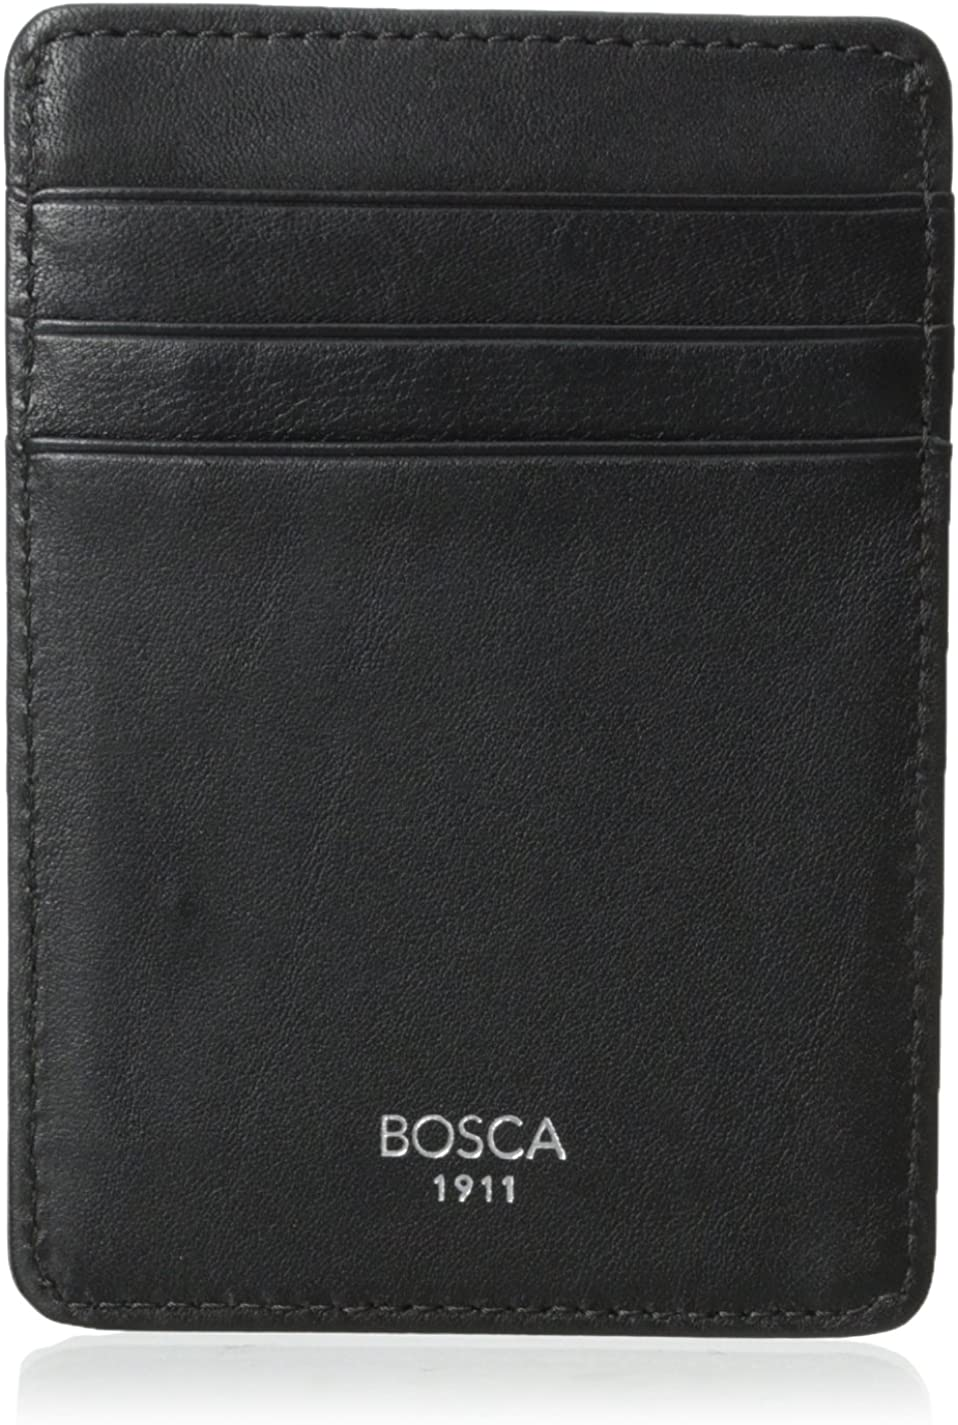 Bosca Men's Front Pocket Leather Wallet